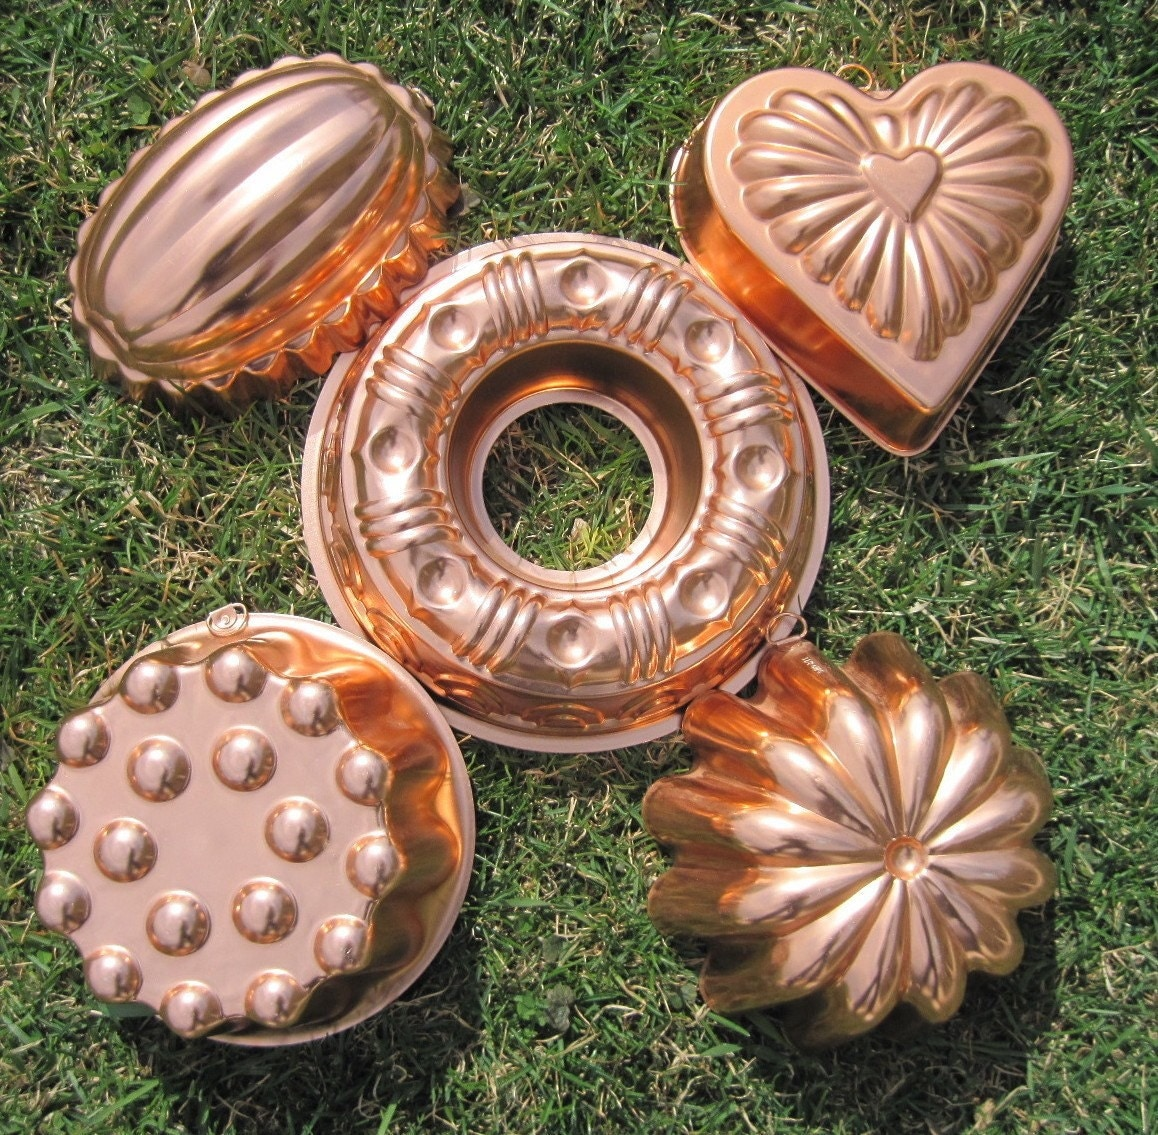 how to clean copper molds